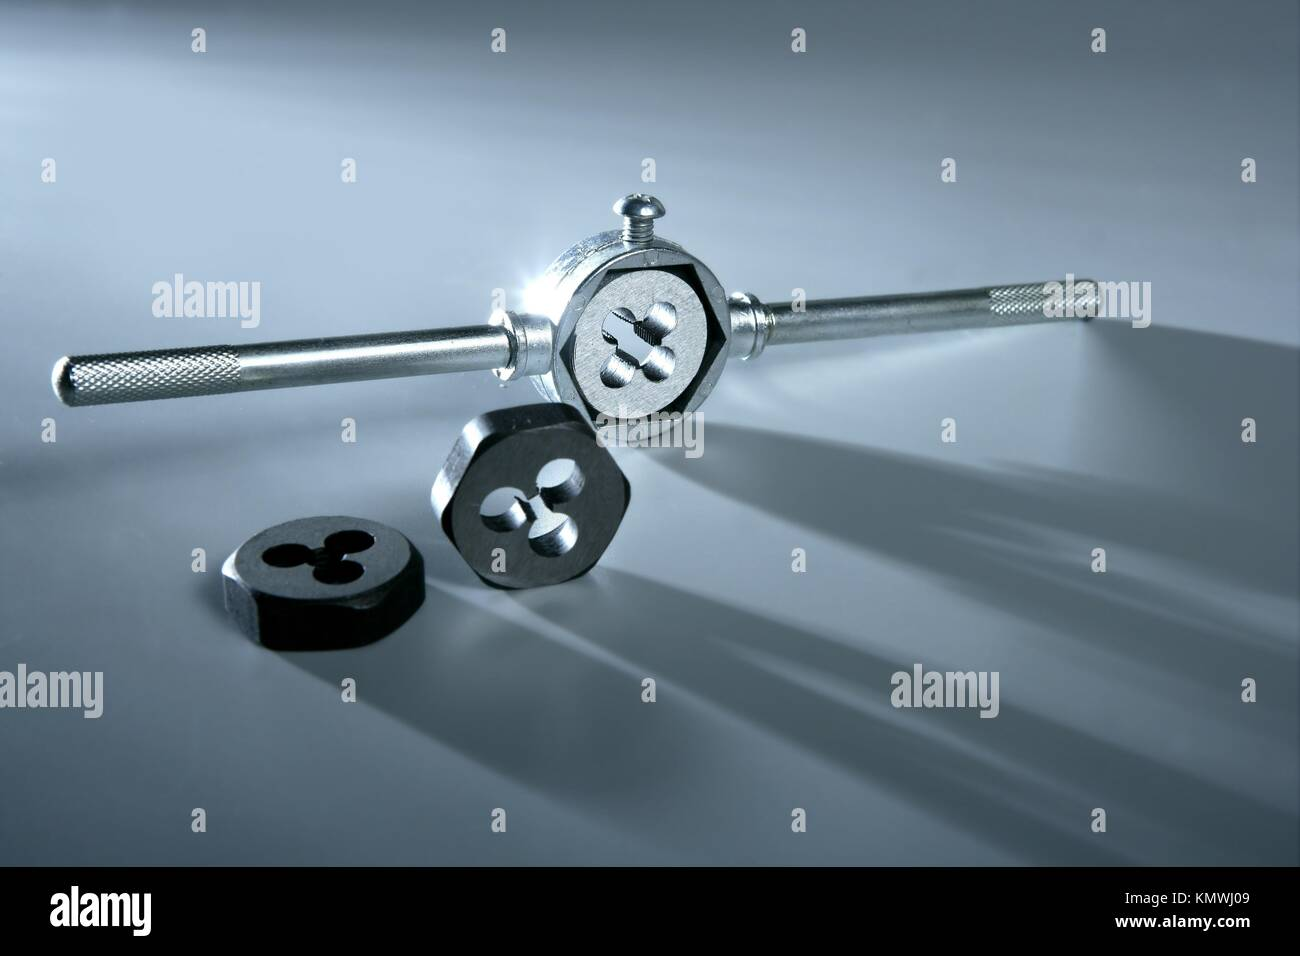 Close Up Tool Die Maker Stock Photos & Close Up Tool Die